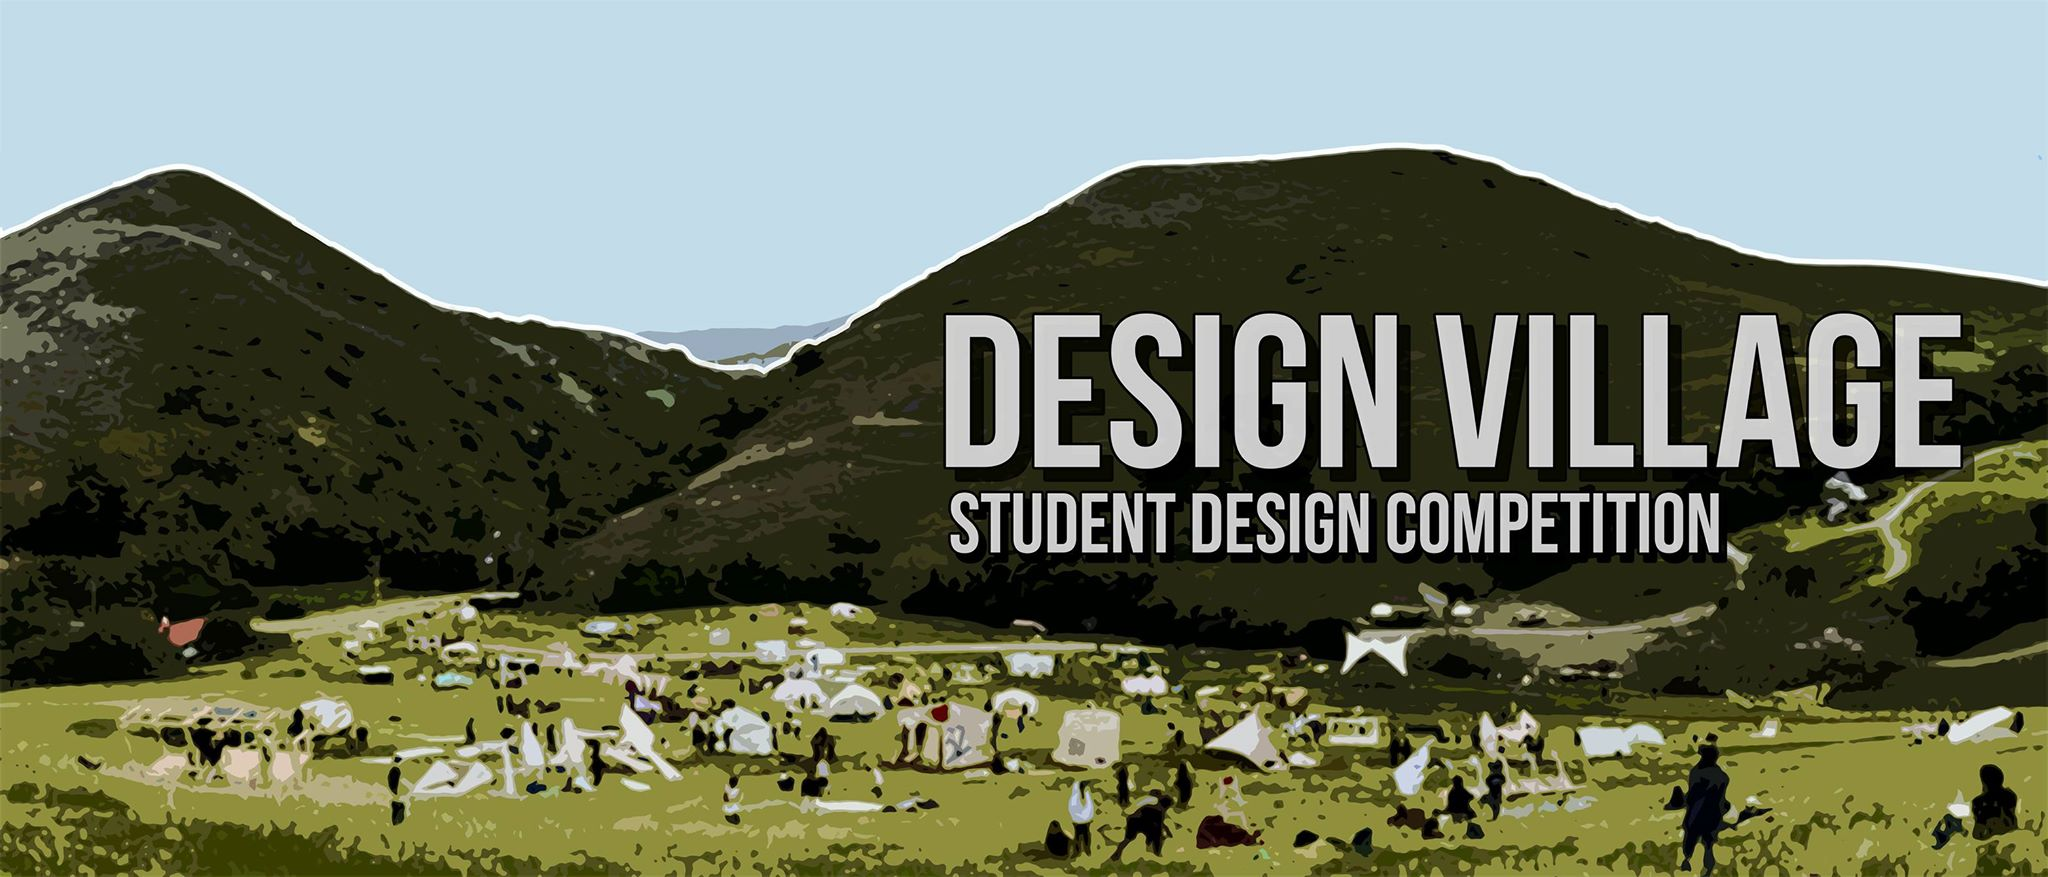 Design village cal poly the competition